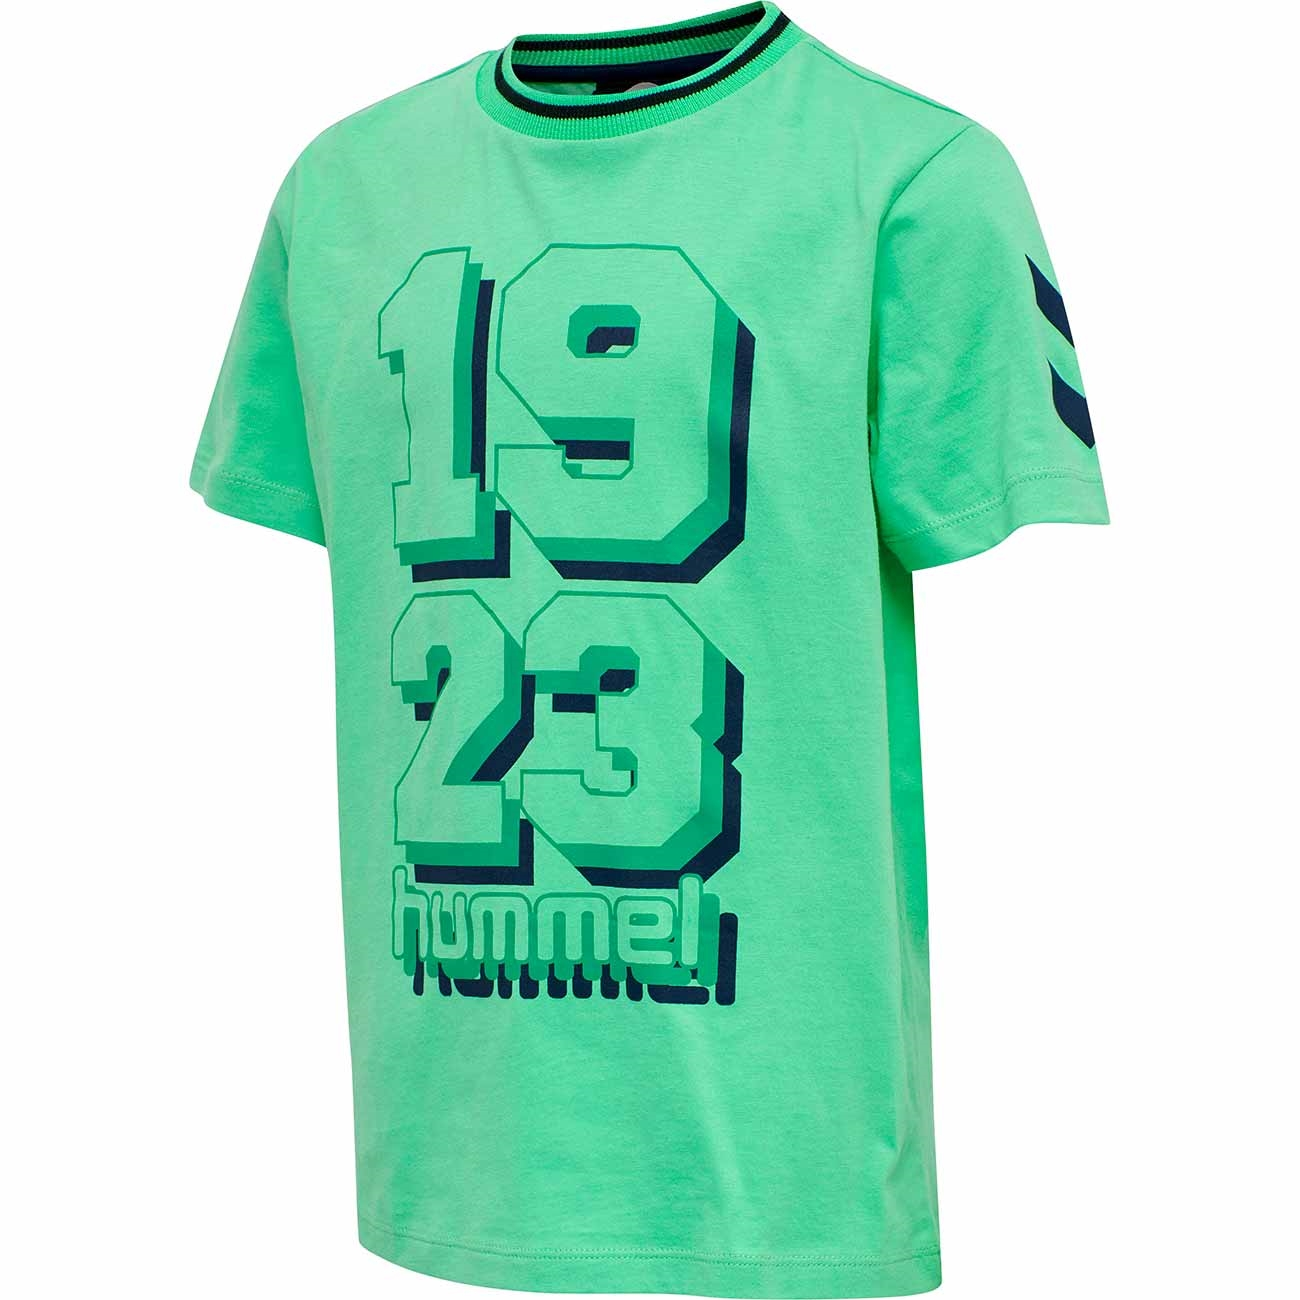 hummel-tshirt-jade-cream-light-green-lysegroen-pattern-moenster